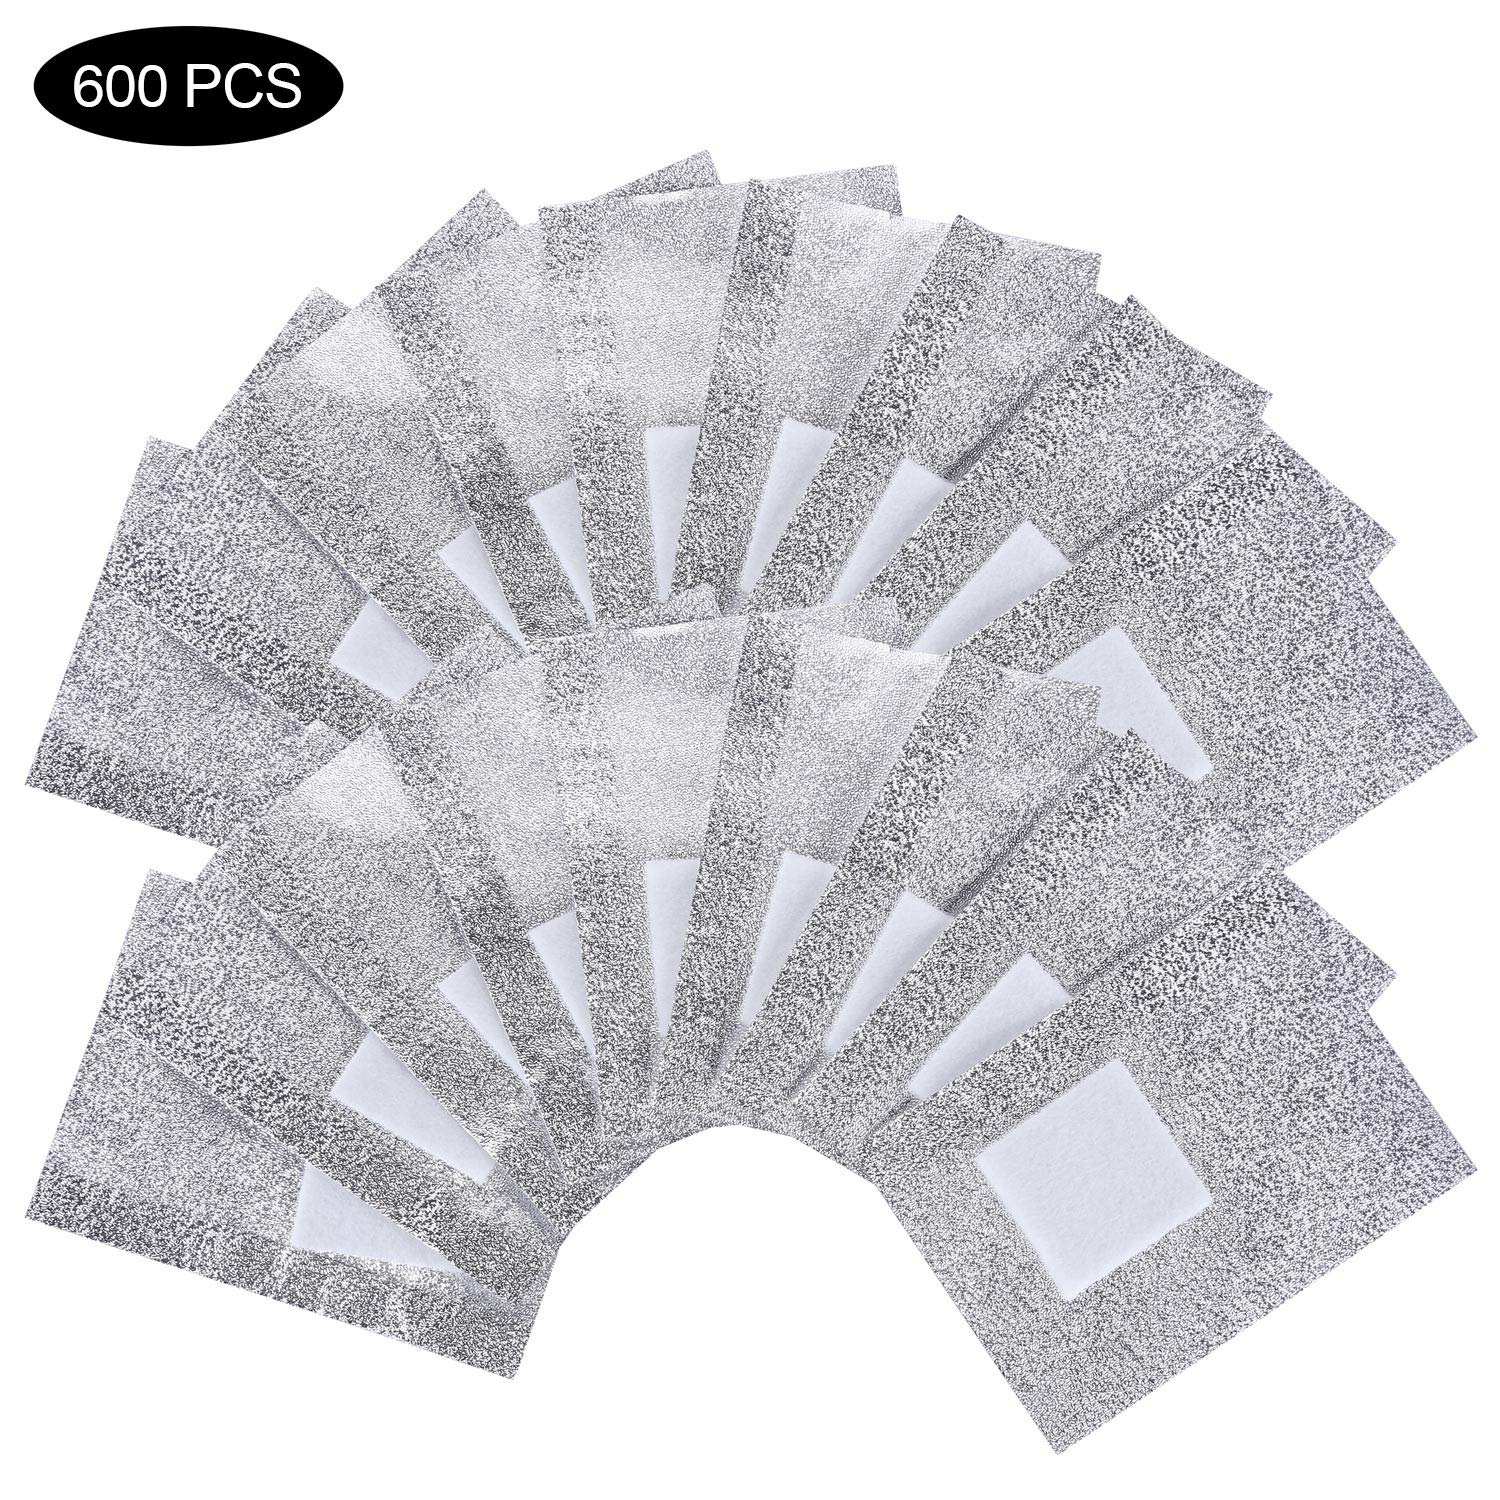 Nail Polish Foil Wraps Soak Off Gel Nail Polish Remover With Lager Cotton Pad pack of 6 (600 Pieces) by Beauty Max